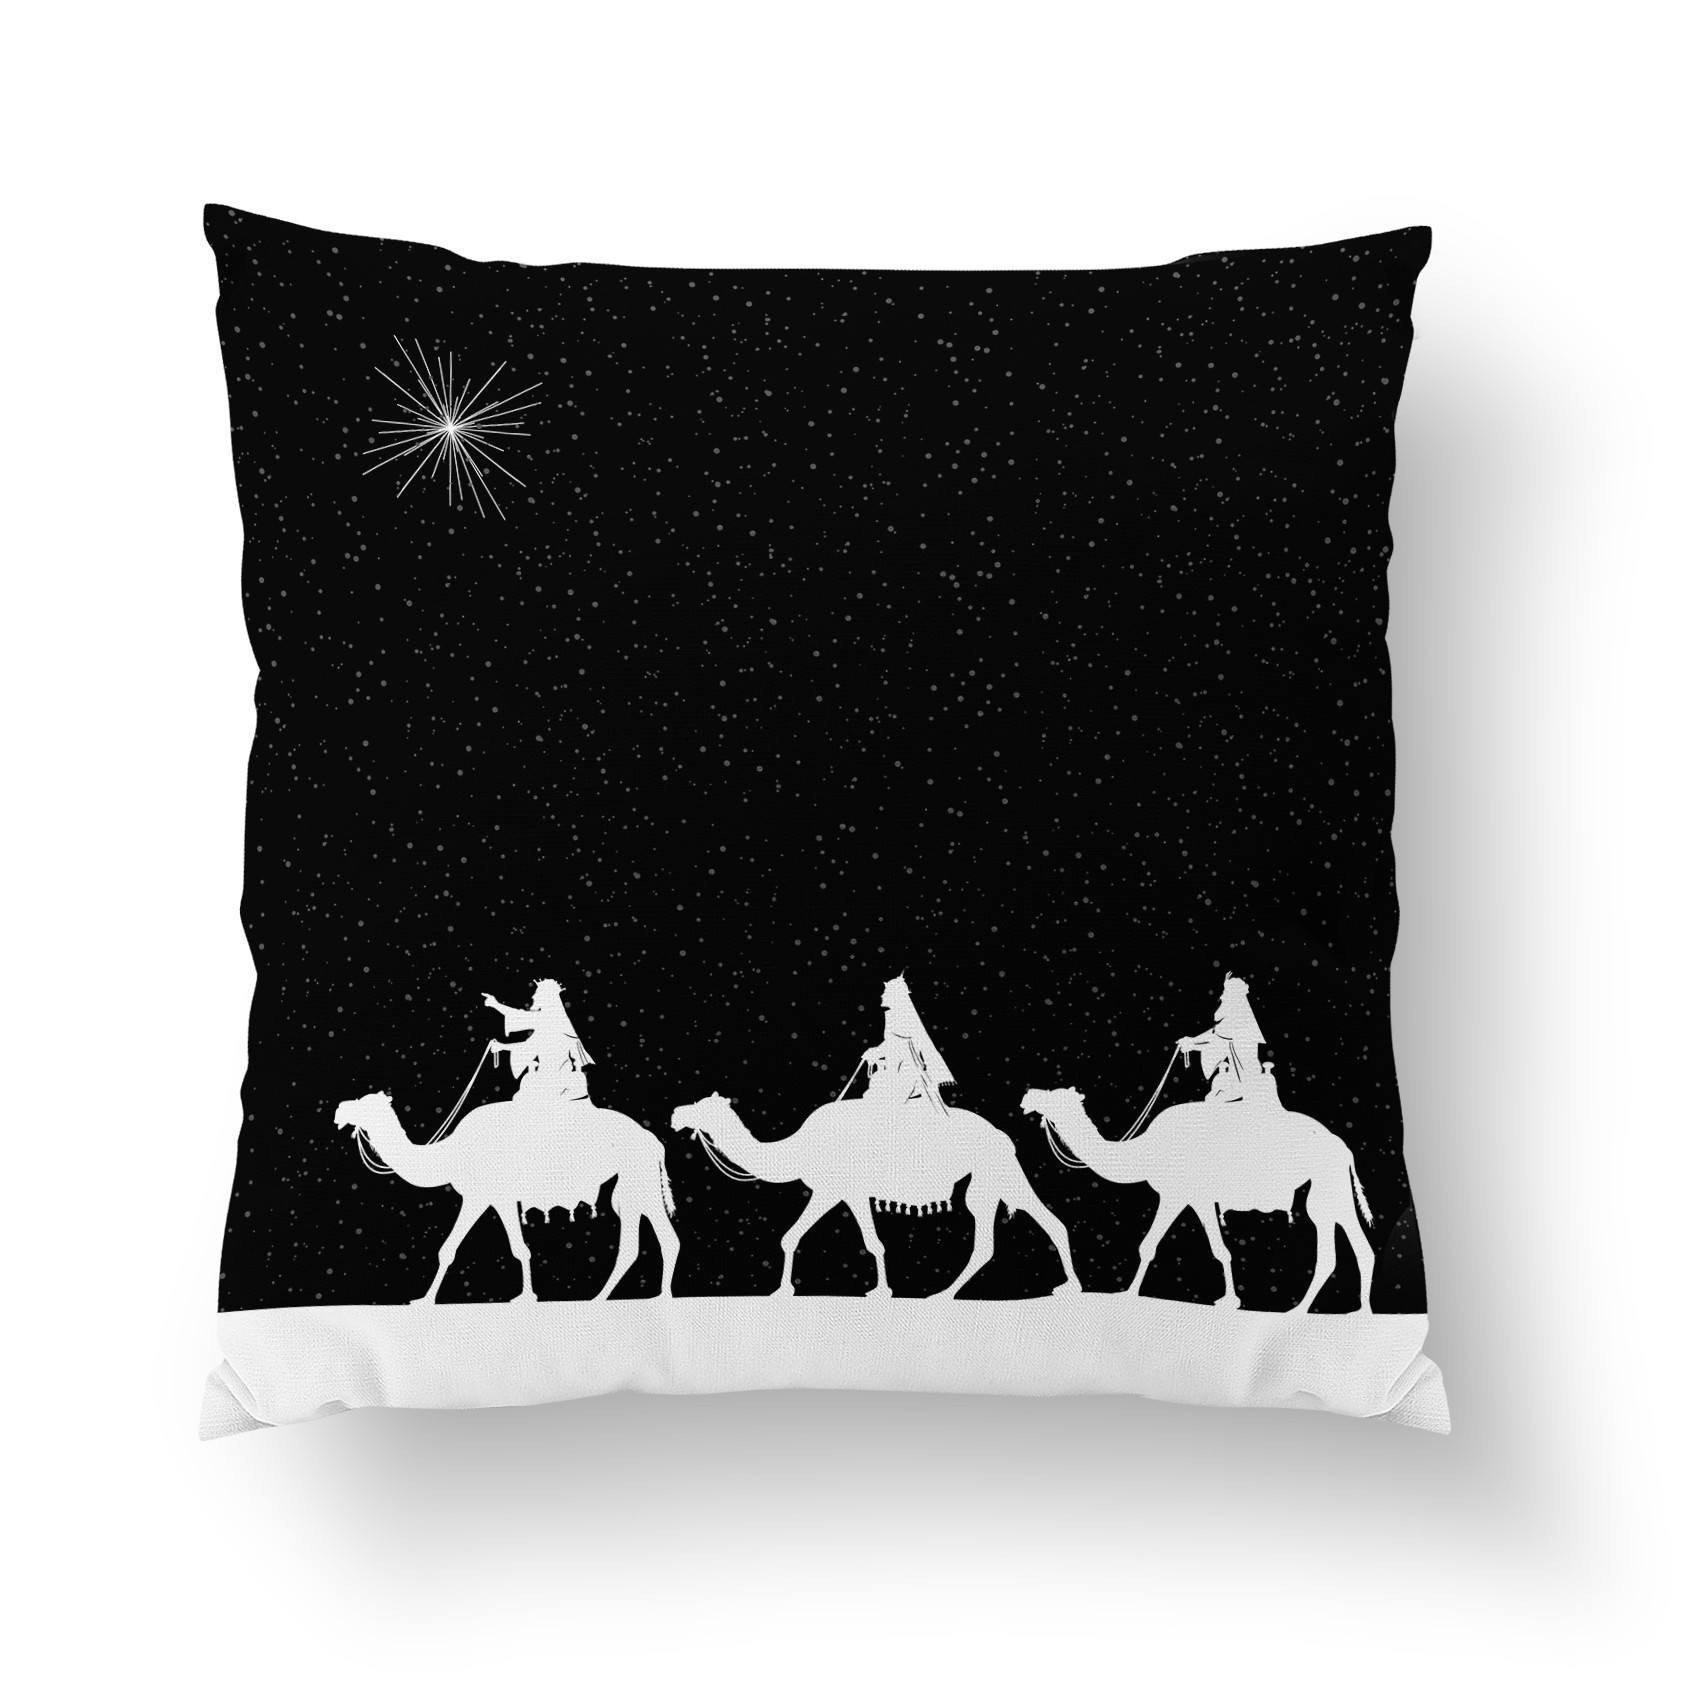 Elegant Christmas Cushion-W.FRANCIS